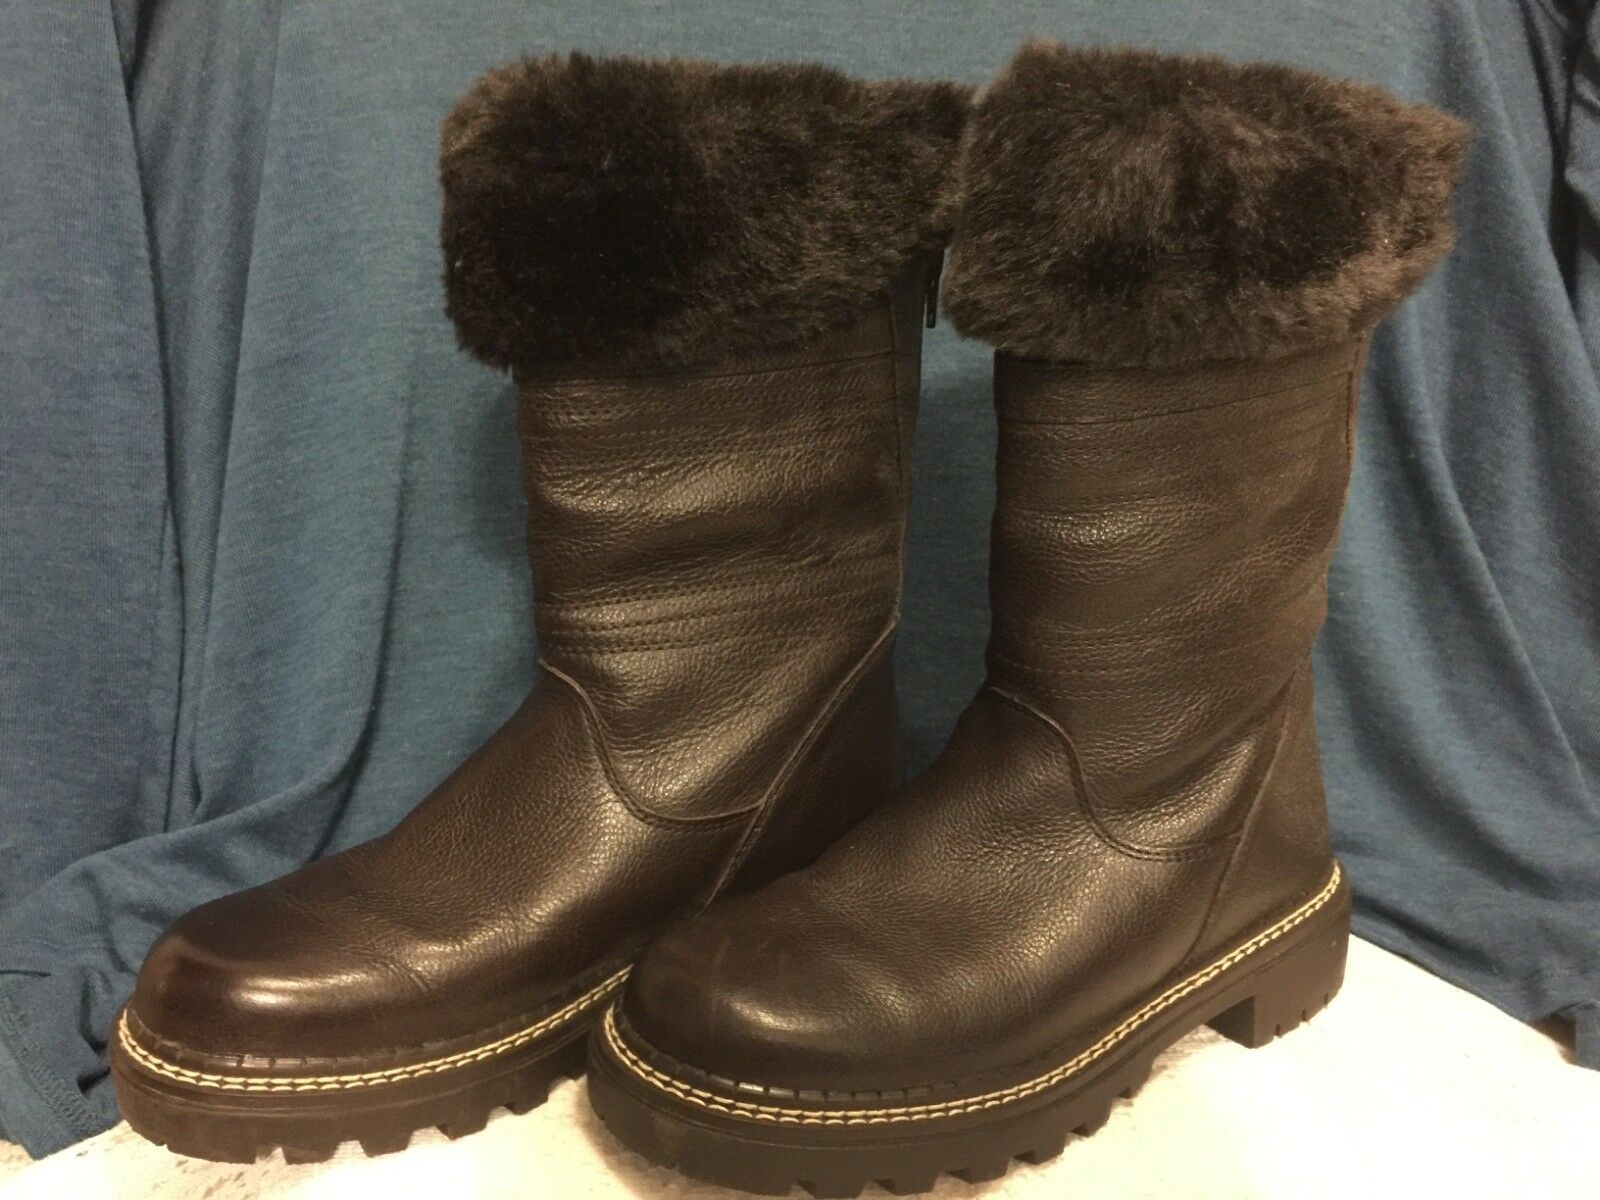 Womens Bass Leather Torino Back Back Back Zipper Brown Fur Trim Lined Winter Boots Sz 6M 36d0bf